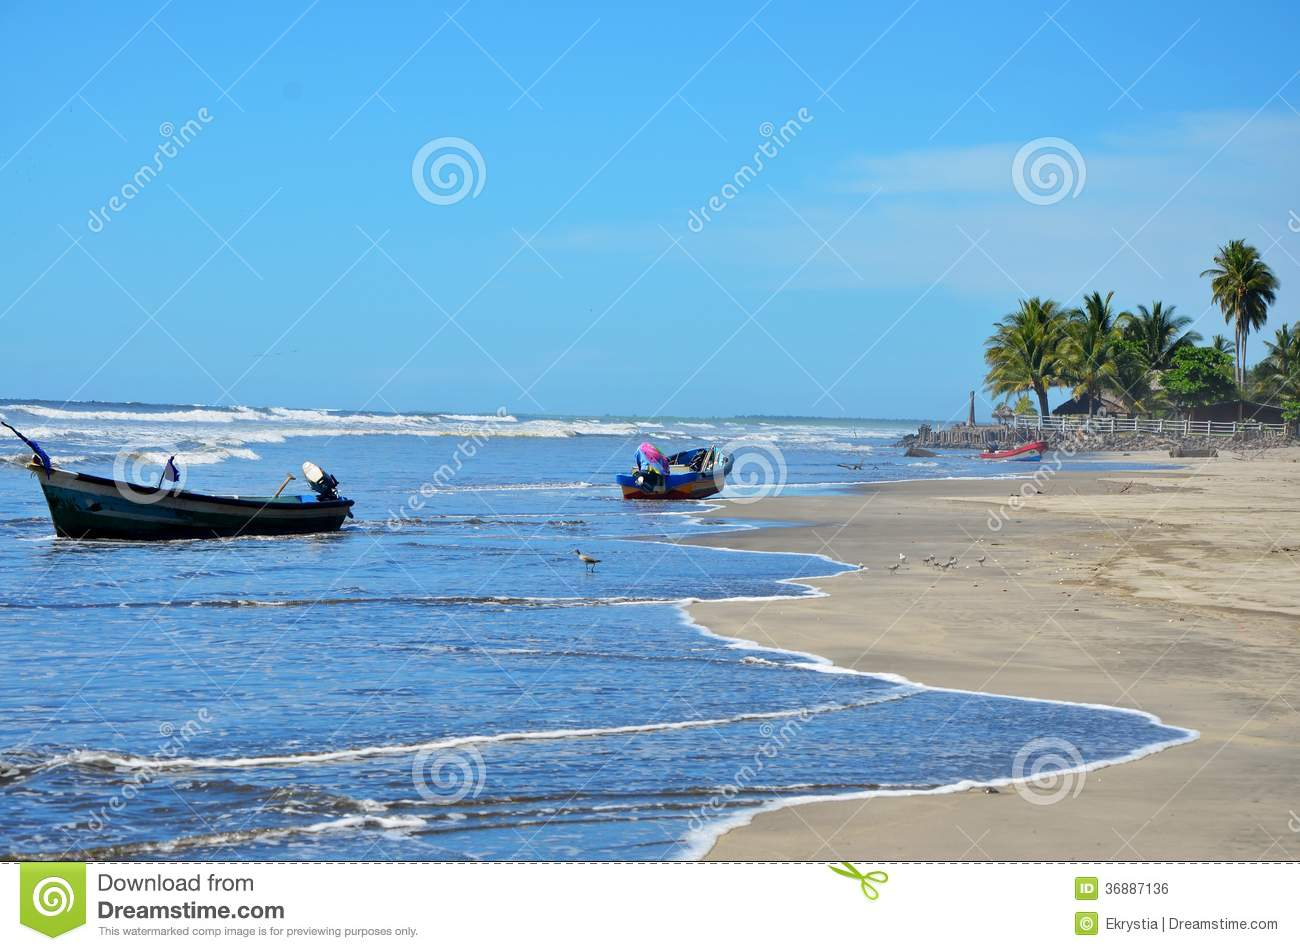 Download EL Espino, El Salvador Di Playa Fotografia Stock - Immagine di colorful, energia: 36887136